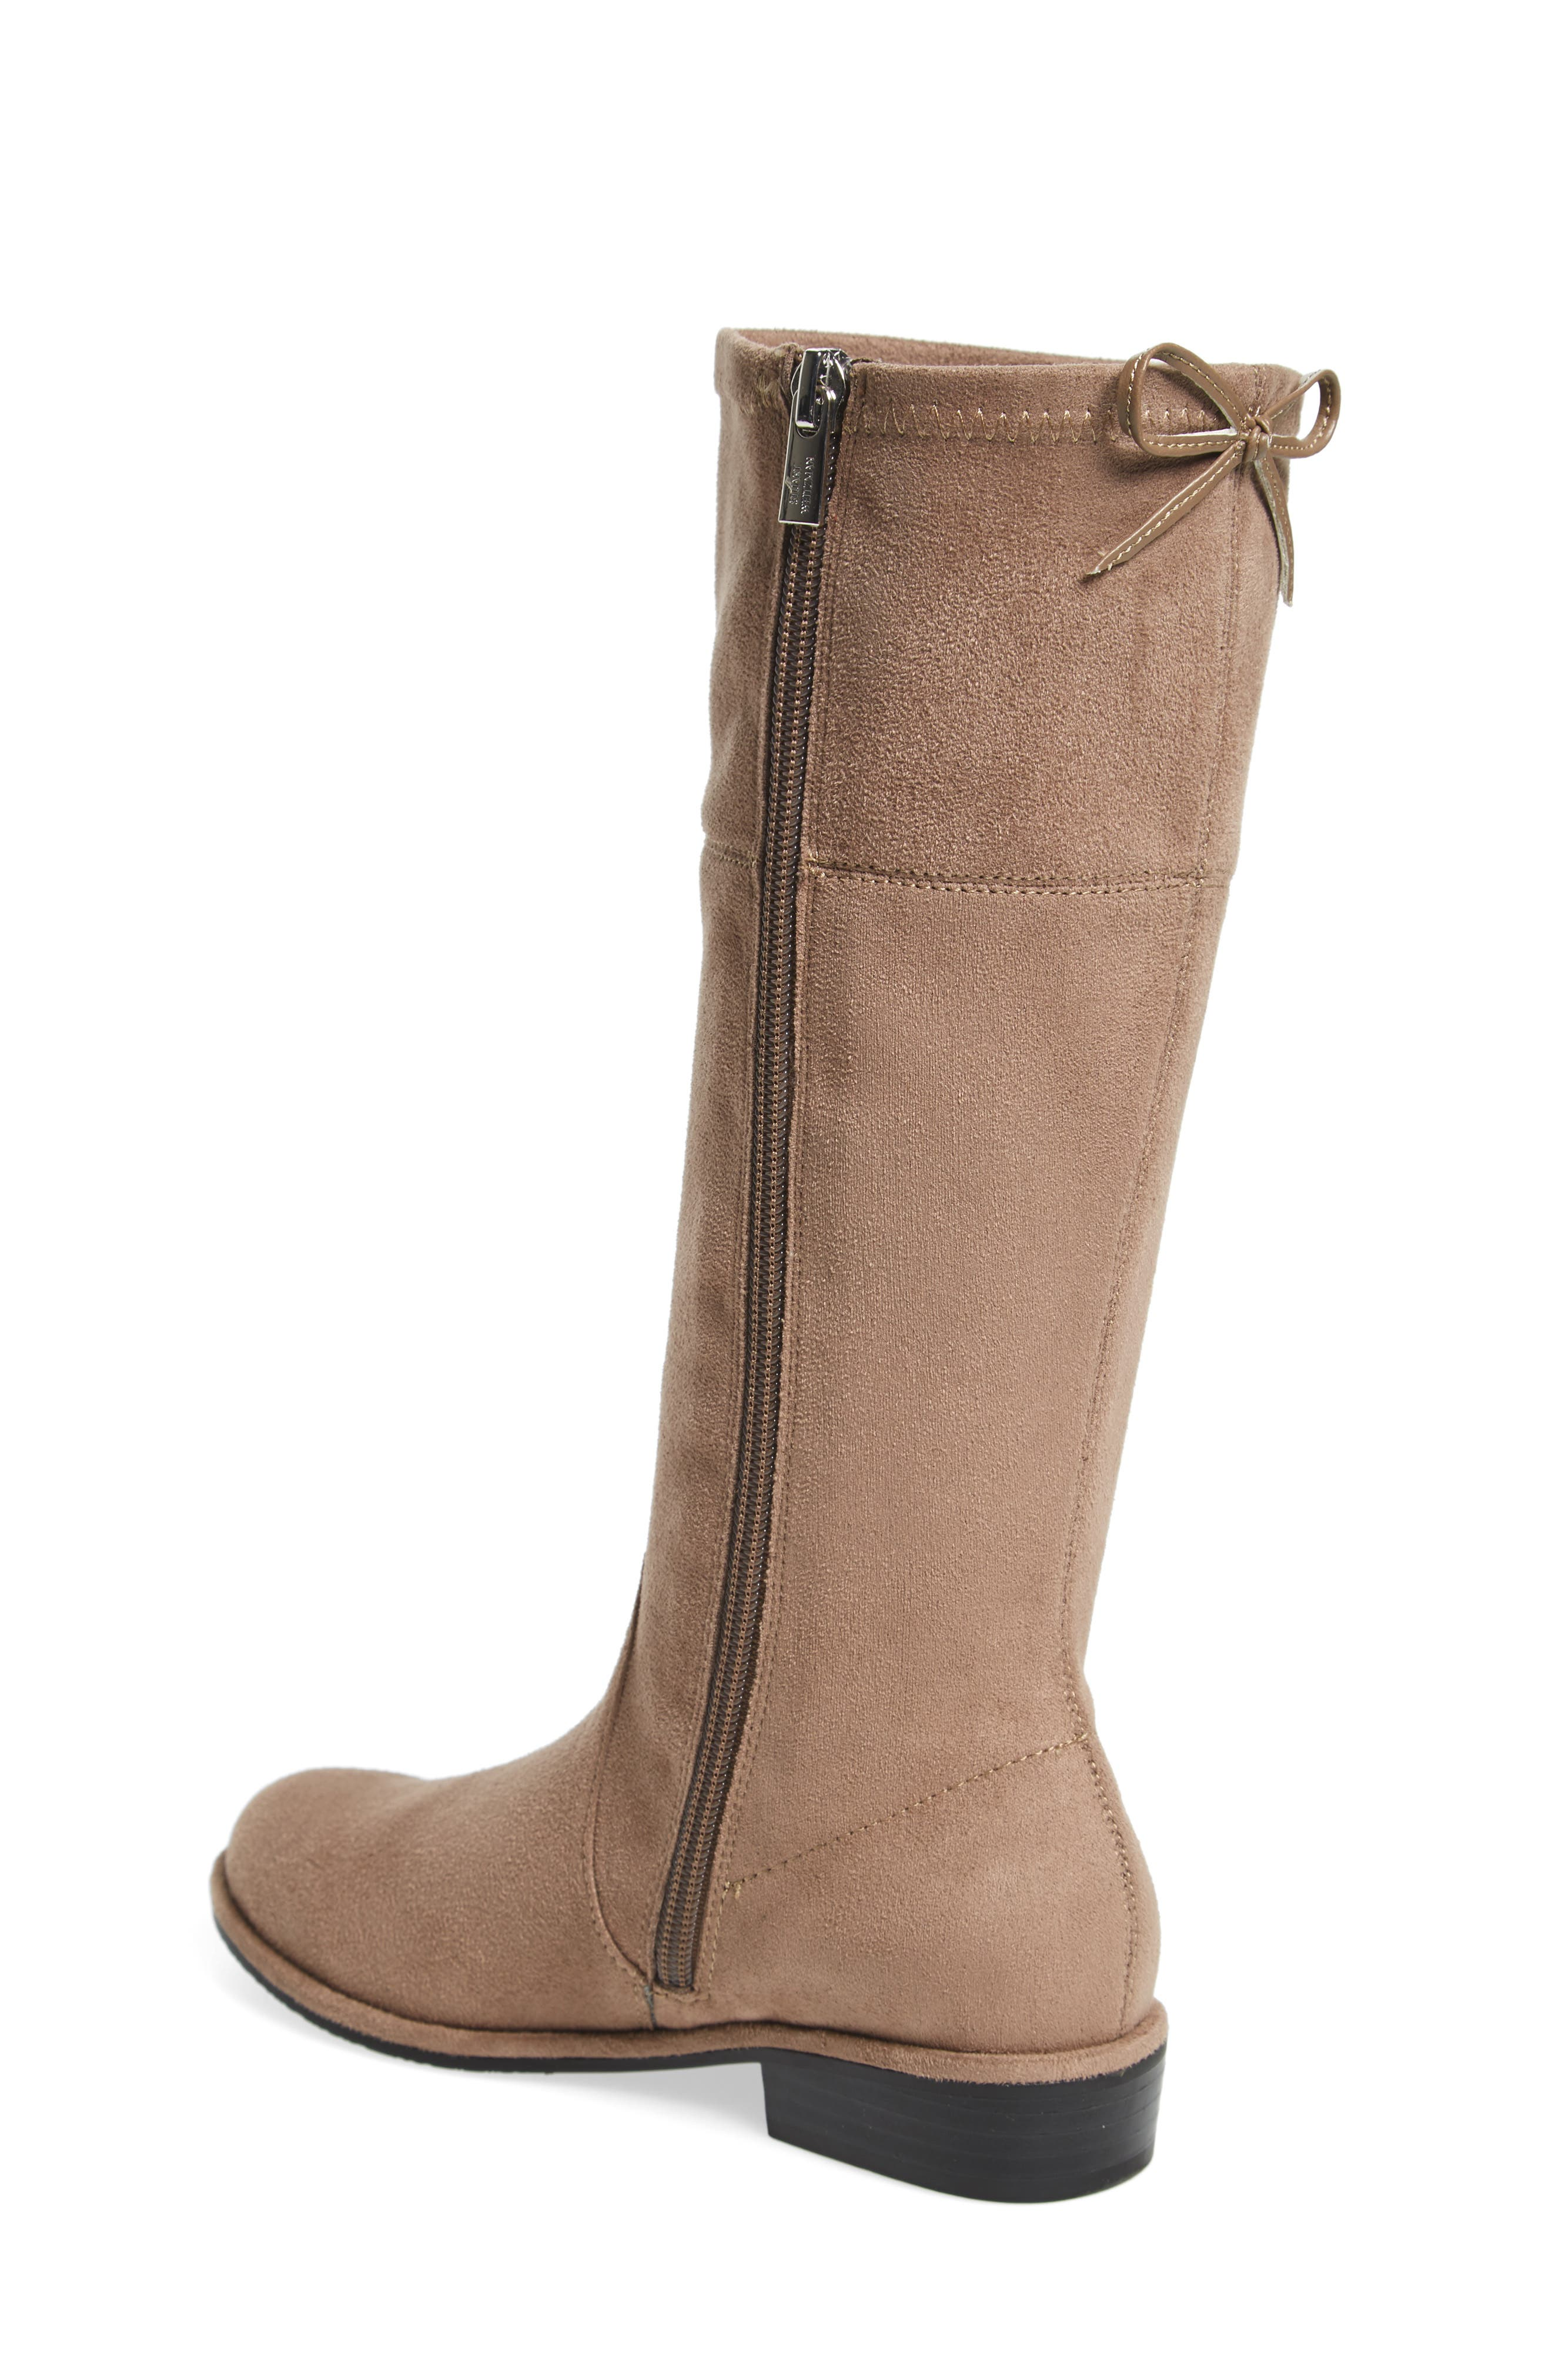 Lowland Bow Riding Boot,                             Alternate thumbnail 4, color,